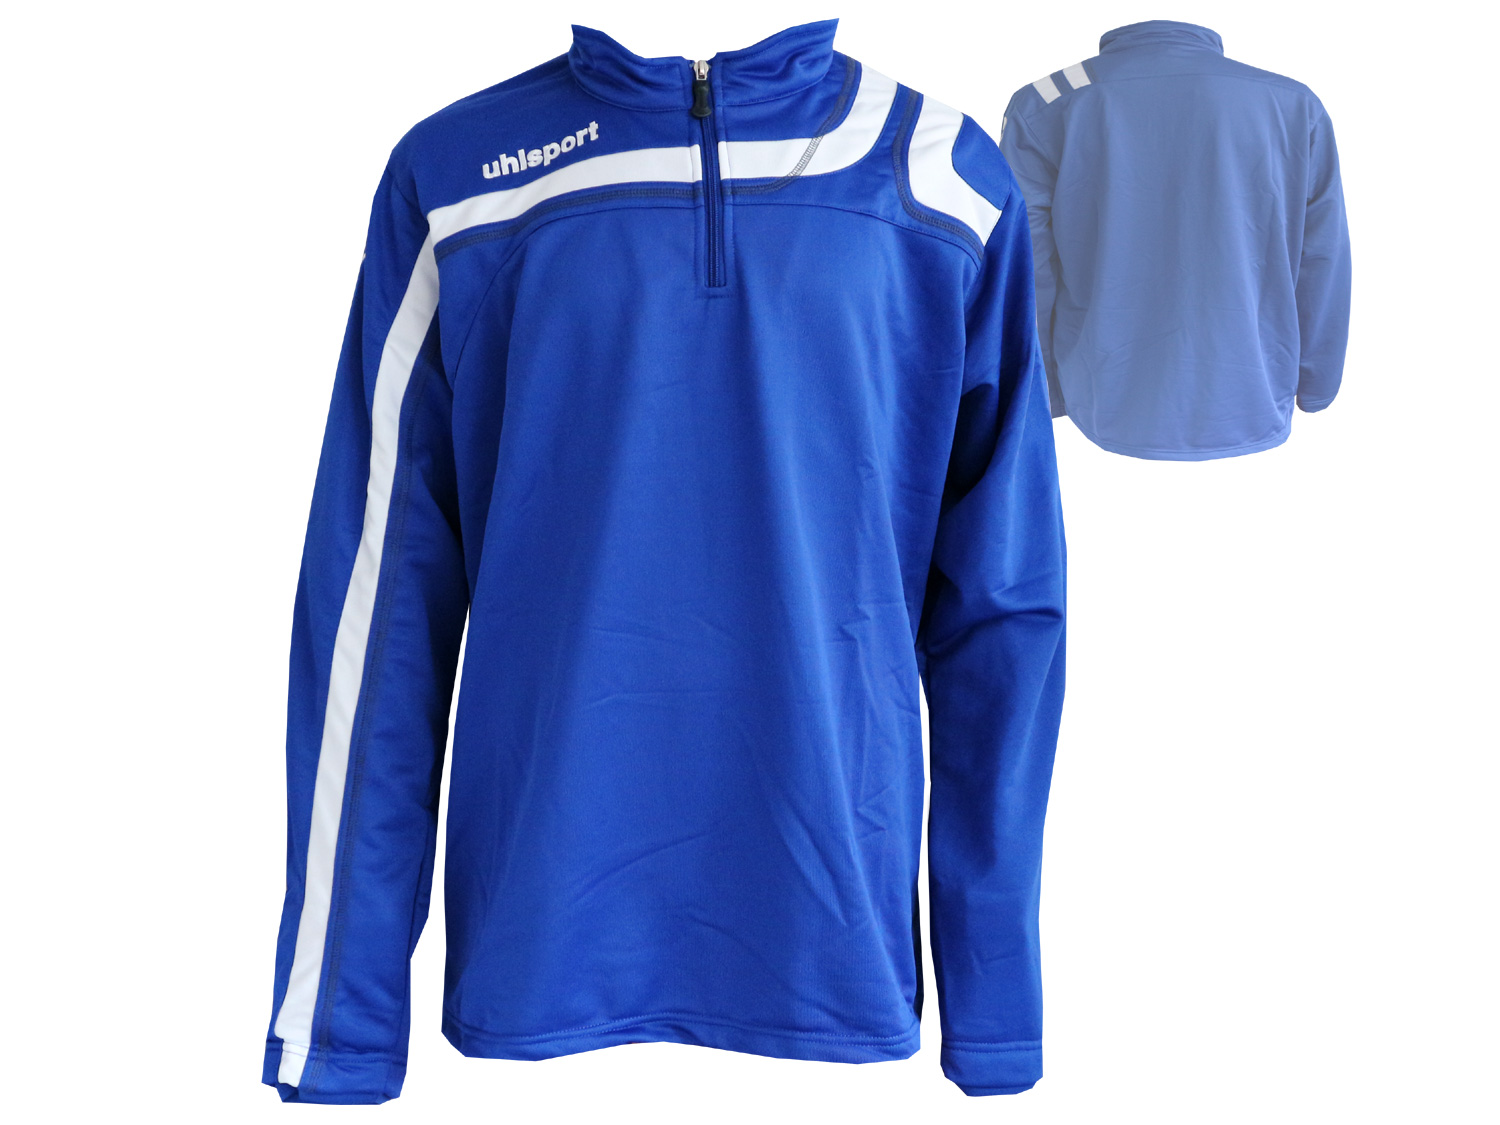 Uhlsport Progressiv 1/4 Zip Training Top